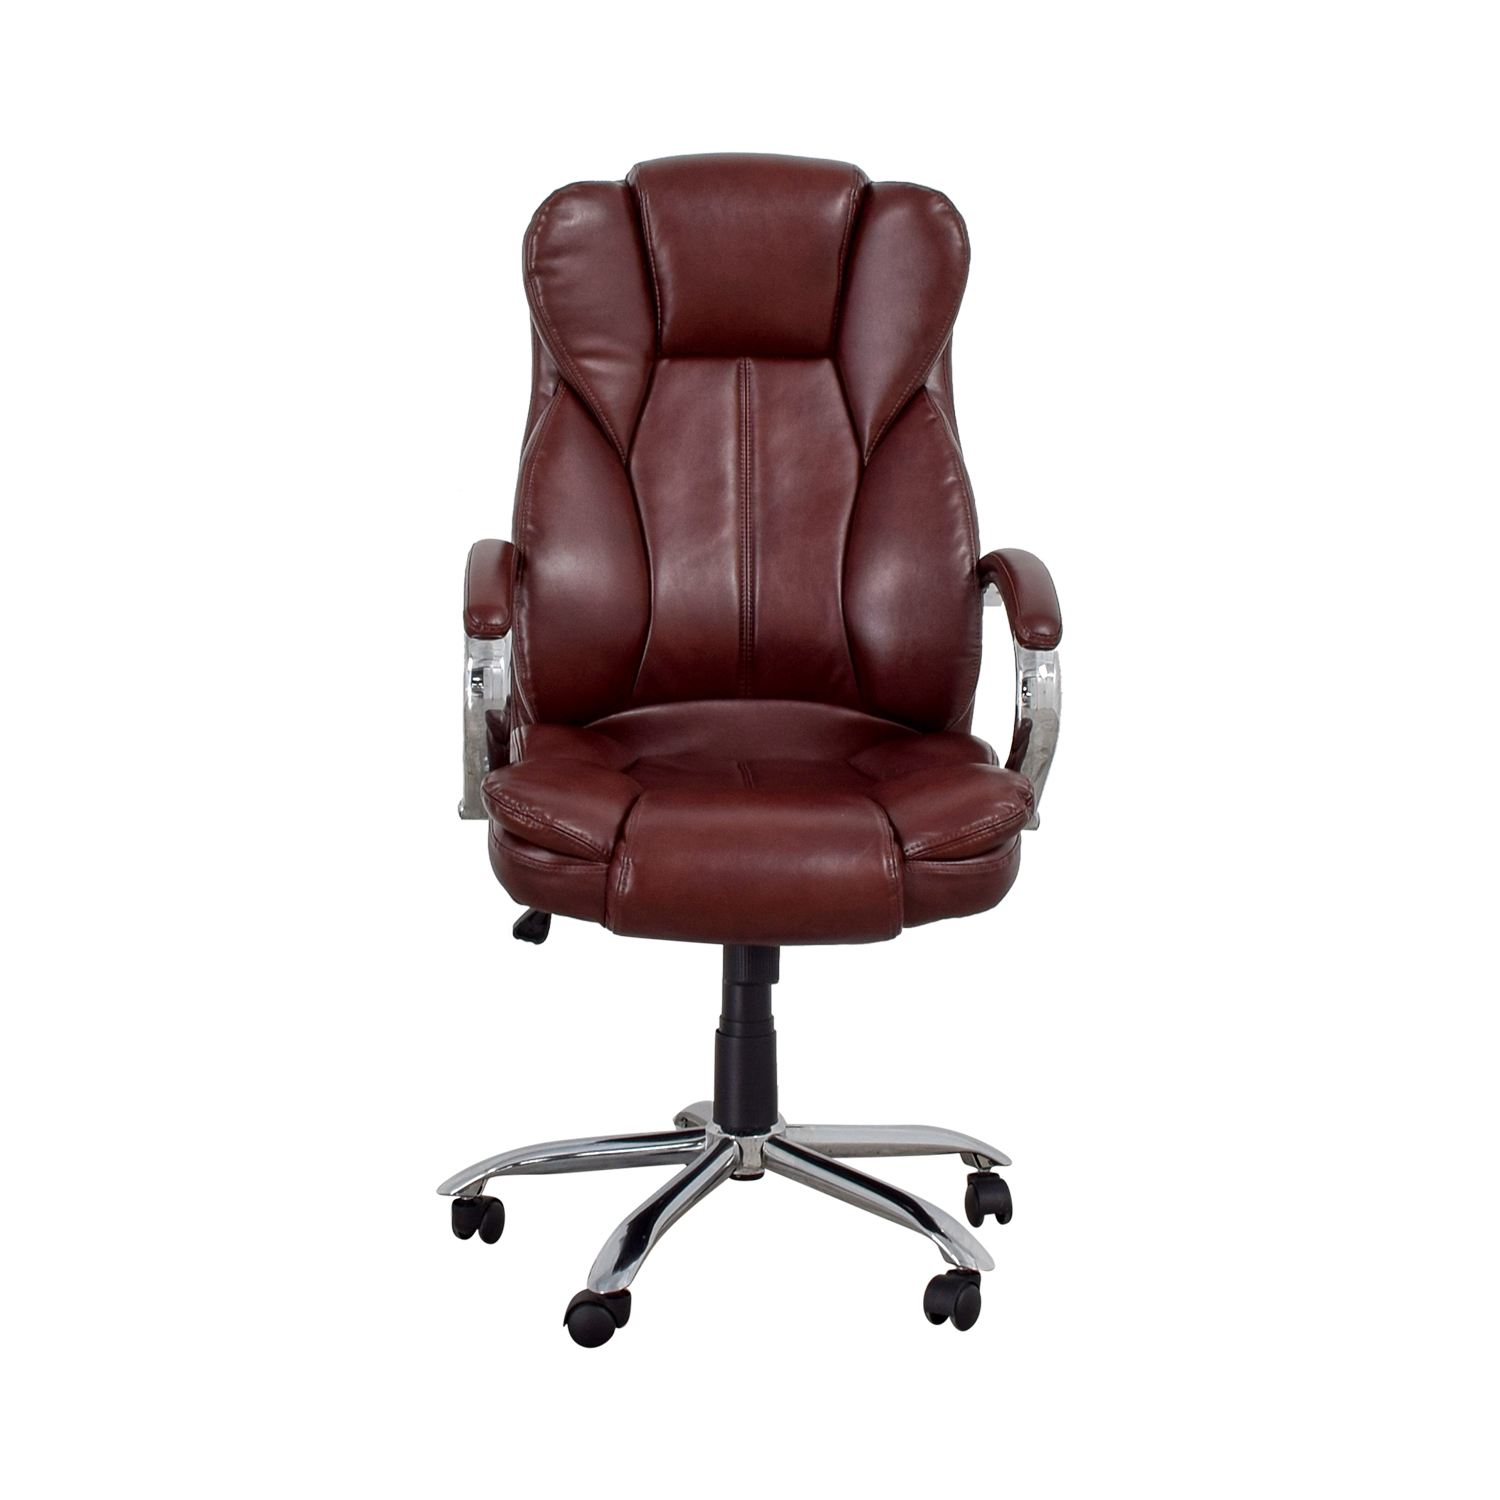 Best Office Best Office Burgundy Office Chair